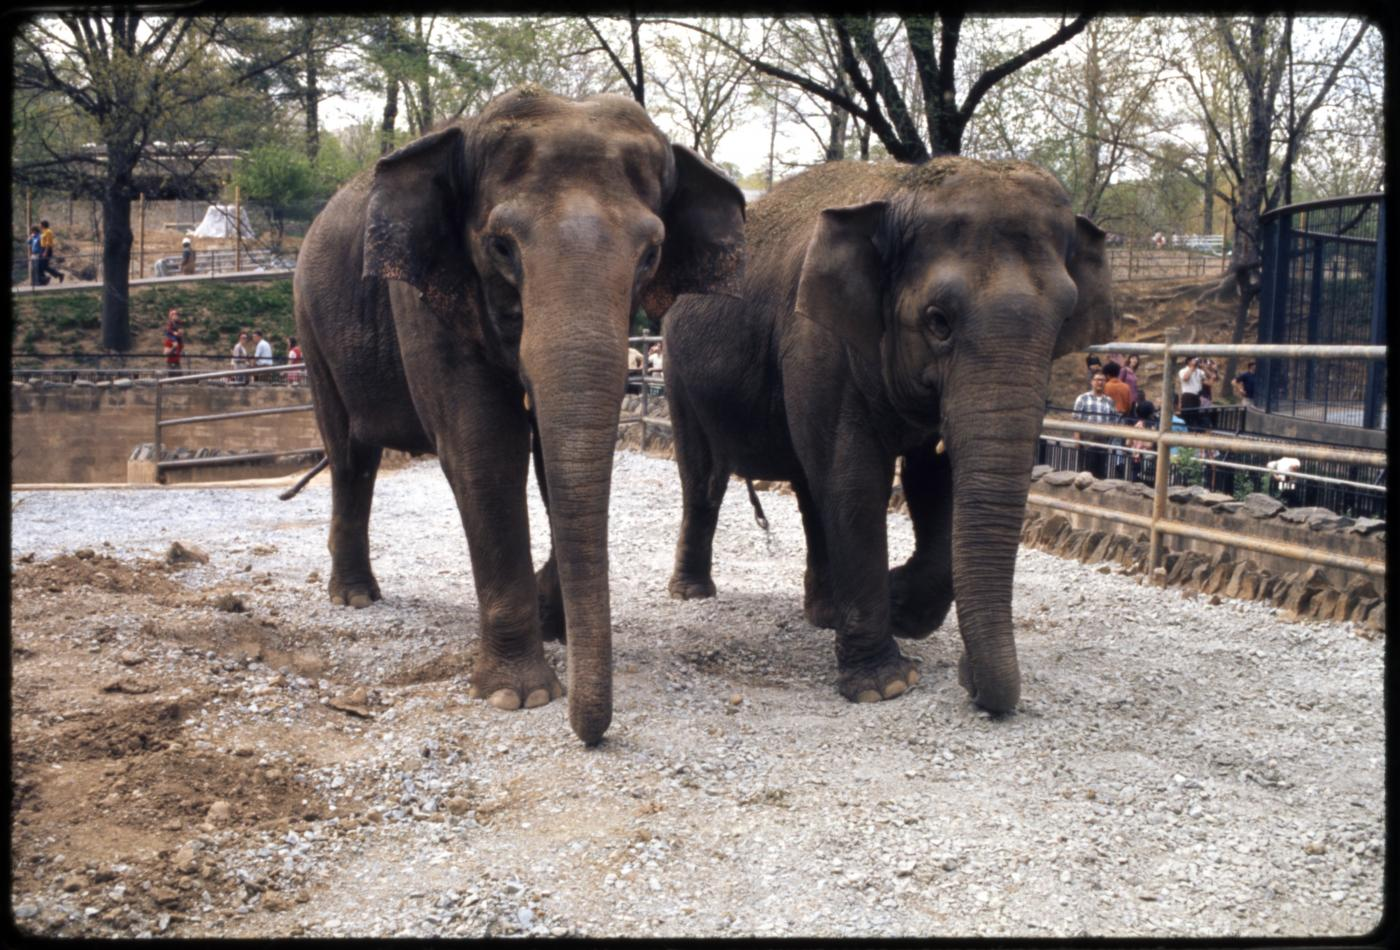 Asian elephants Ambika and Shanthi at the Smithsonian's National Zoo in 1973.